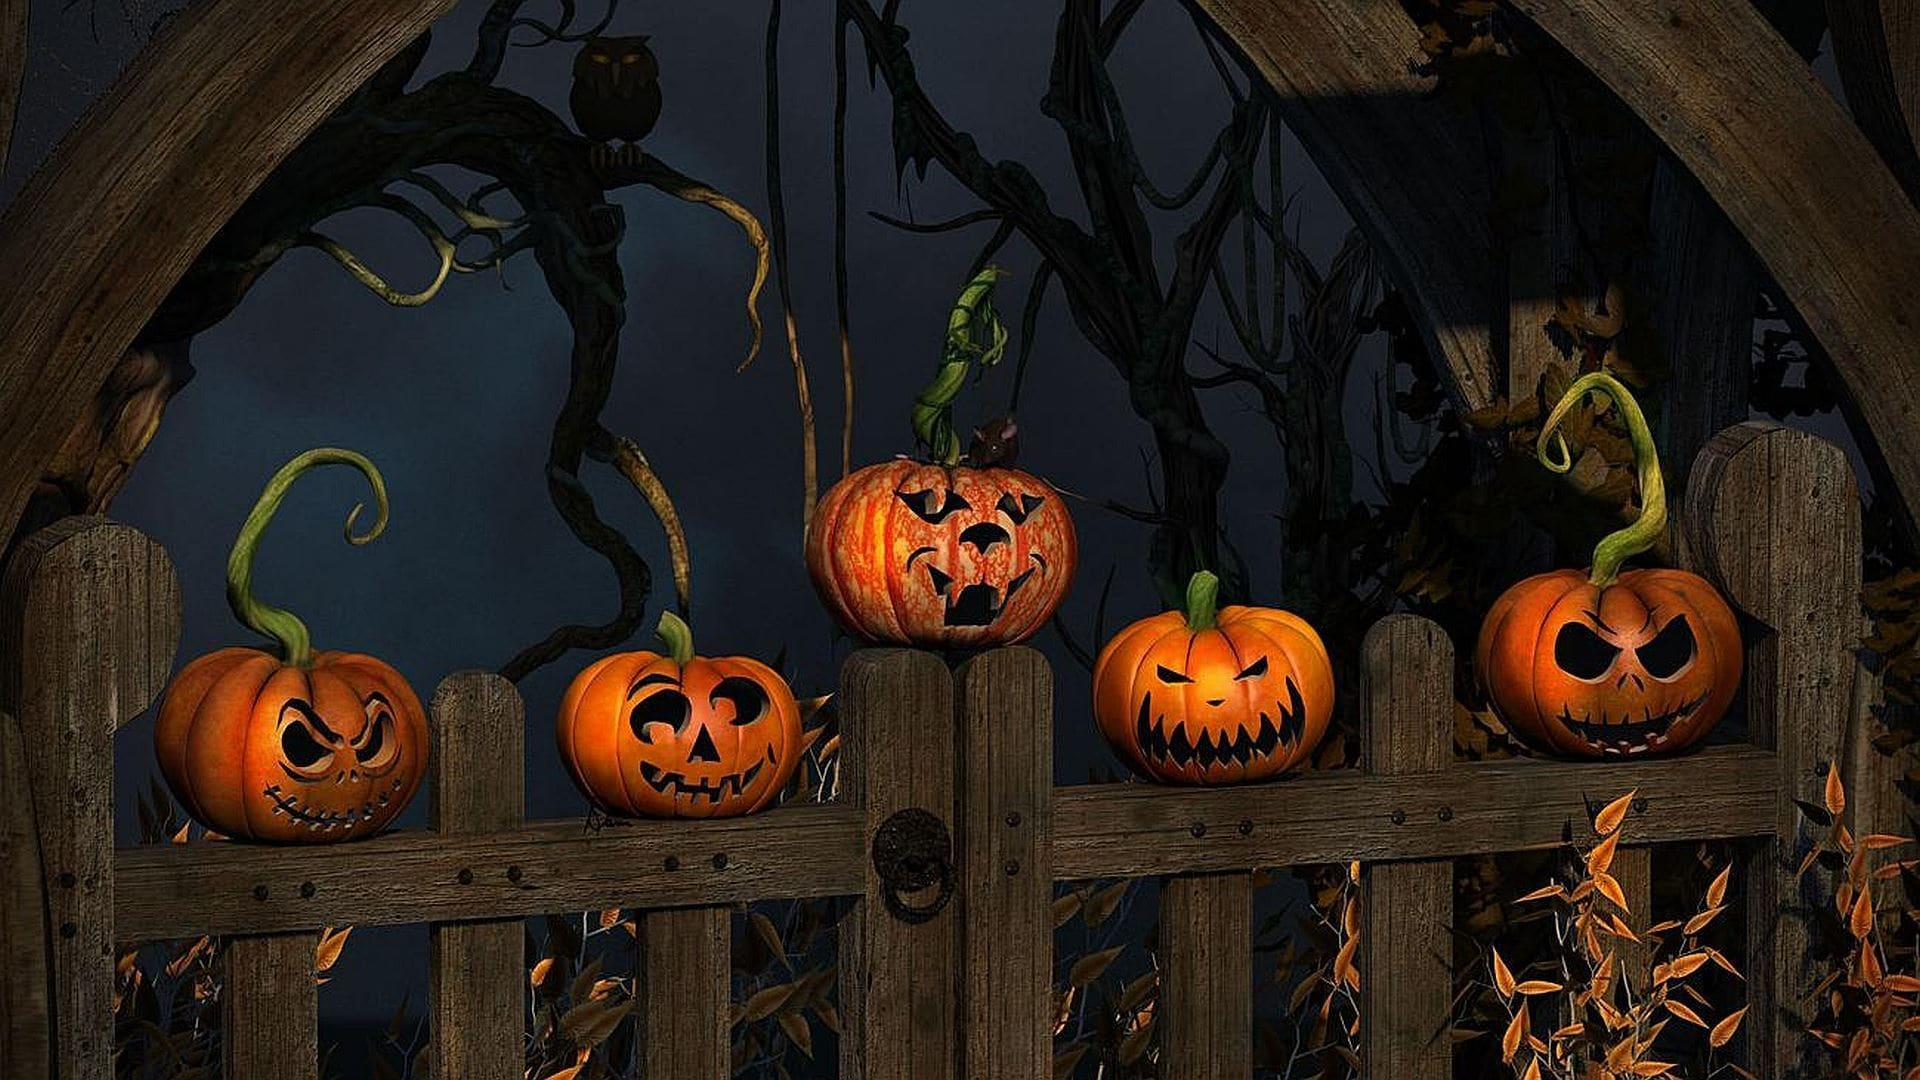 Horror Animated Wallpaper Free Download For Pc: Download Free Halloween Wallpaper For Mac OS X El Capitan